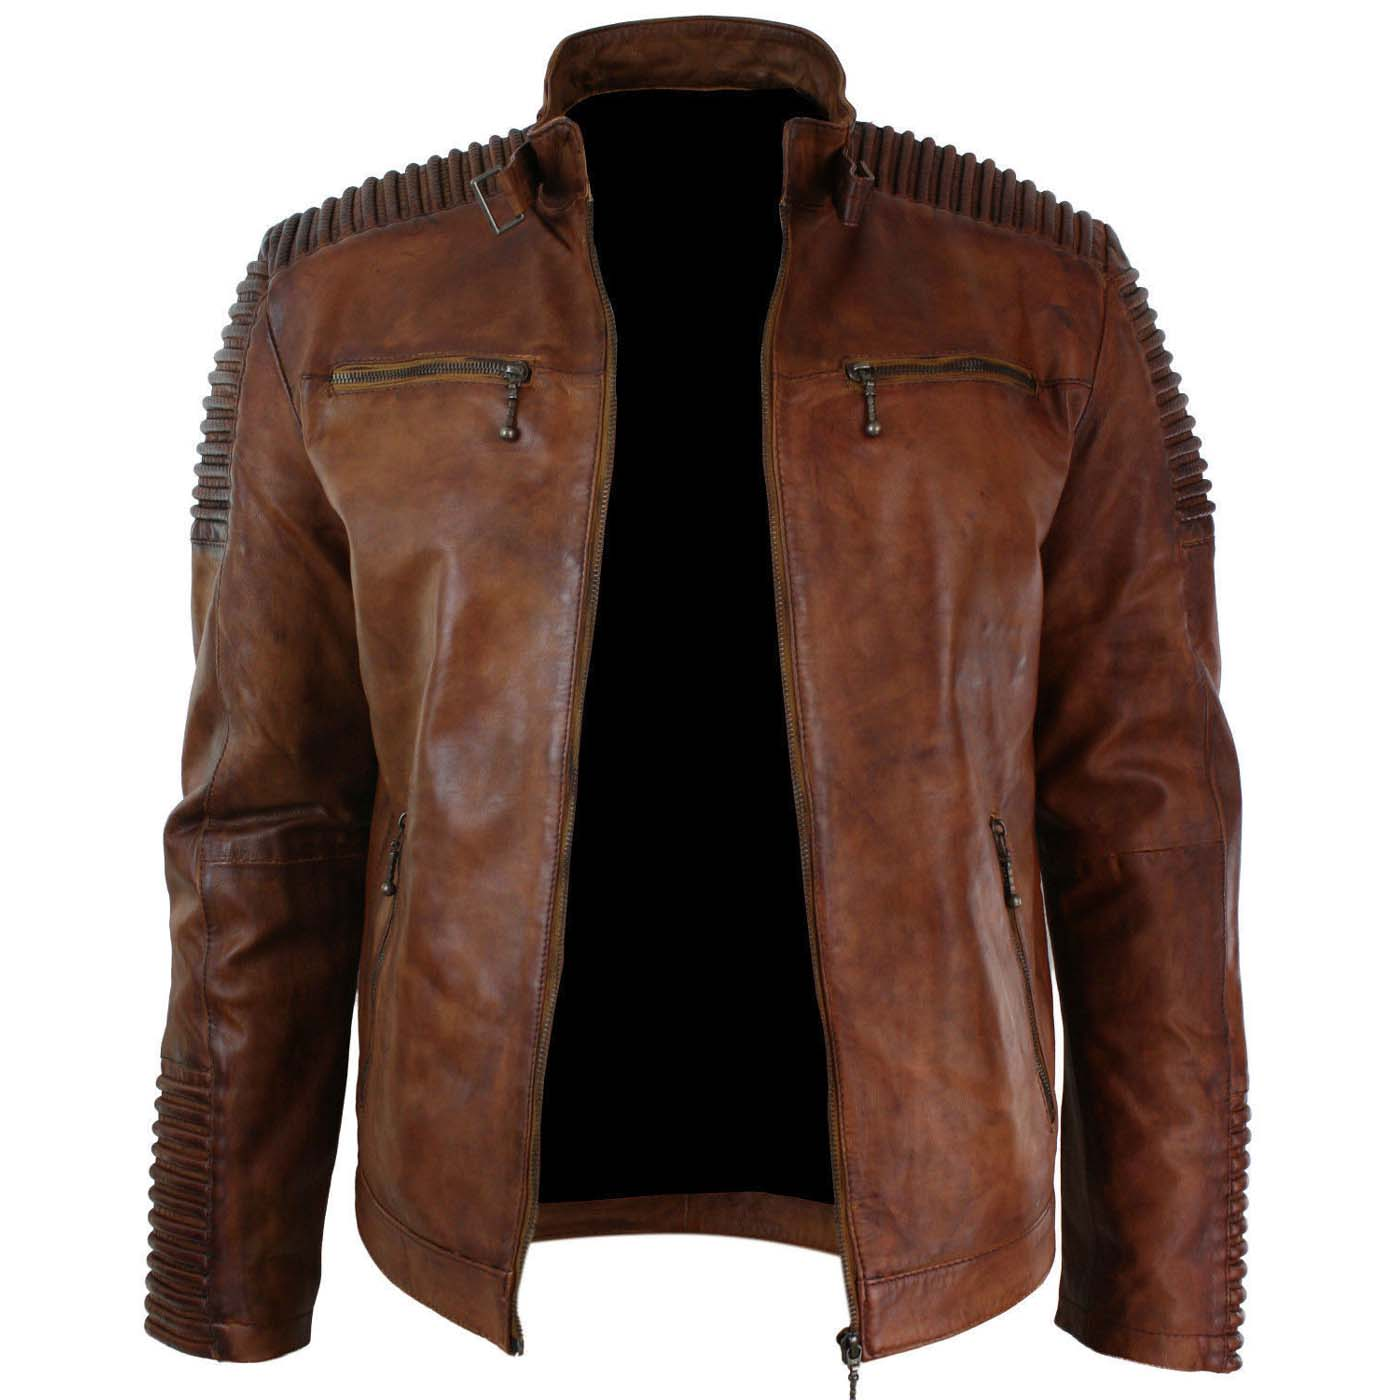 Mens Biker Vintage Cafe Racer Wax Distressed Brown Leather Jacket